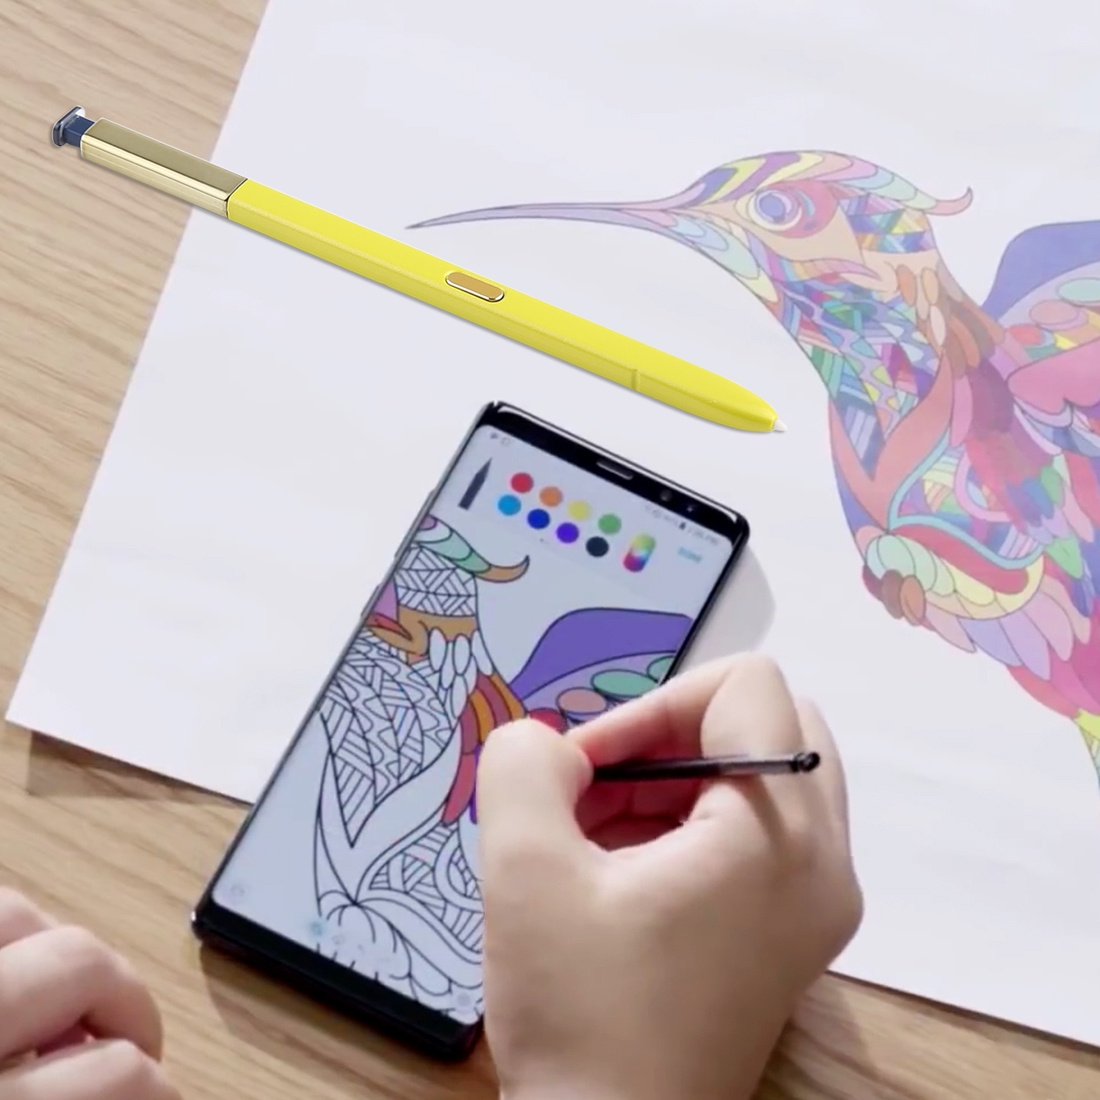 Portable High-Sensitive Stylus Pen without Bluetooth for Galaxy Note9 (Yellow)